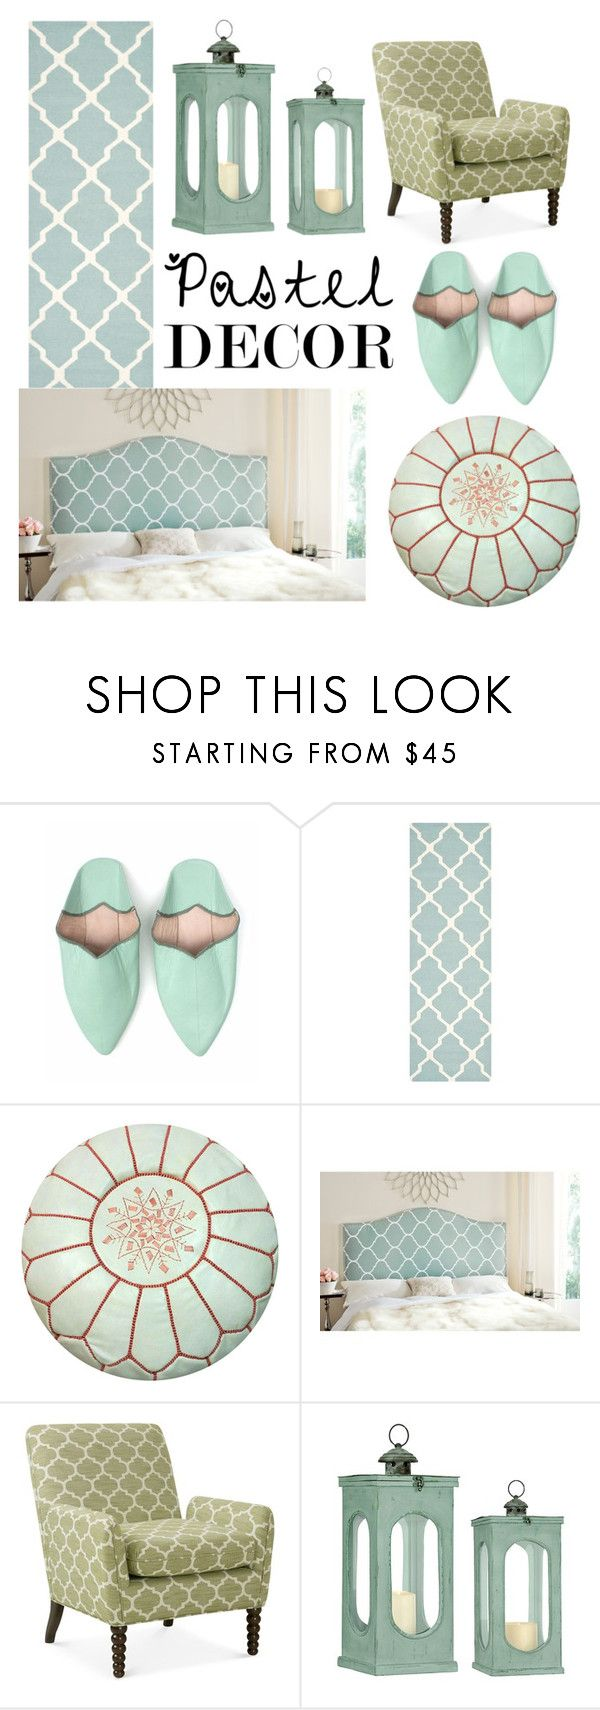 """""""moroccan*green"""" by ellyelly-o ❤ liked on Polyvore featuring interior, interiors, interior design, home, home decor, interior decorating, Bohemia and Safavieh"""